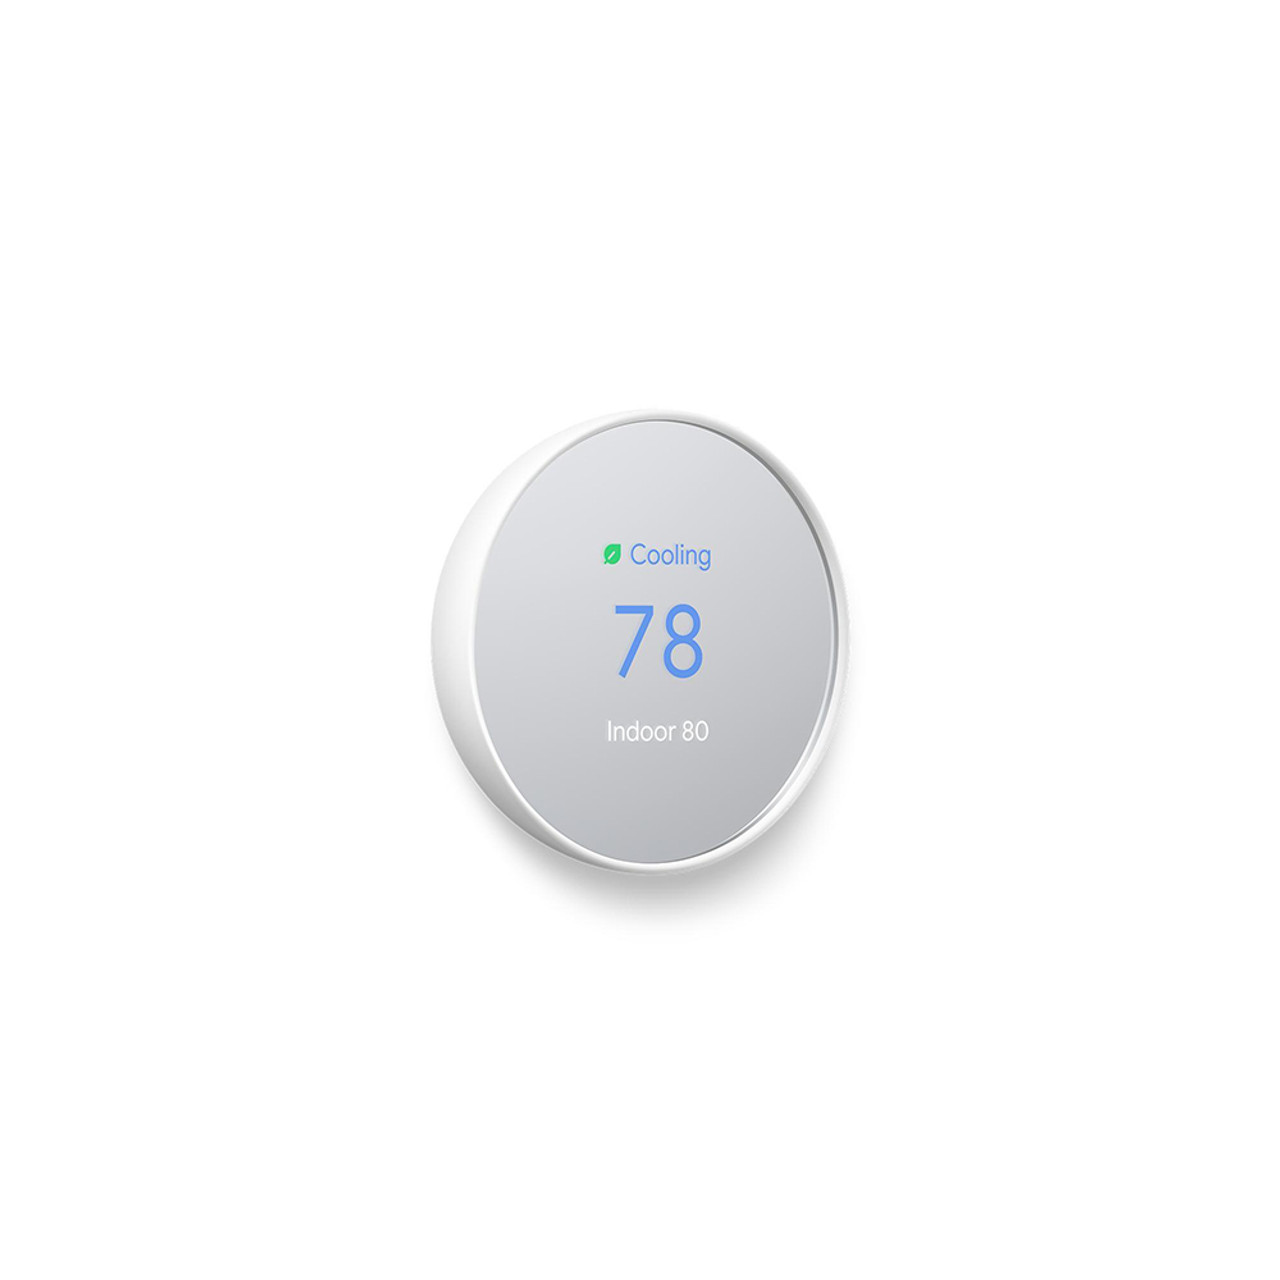 Nest snow white thermostat side view